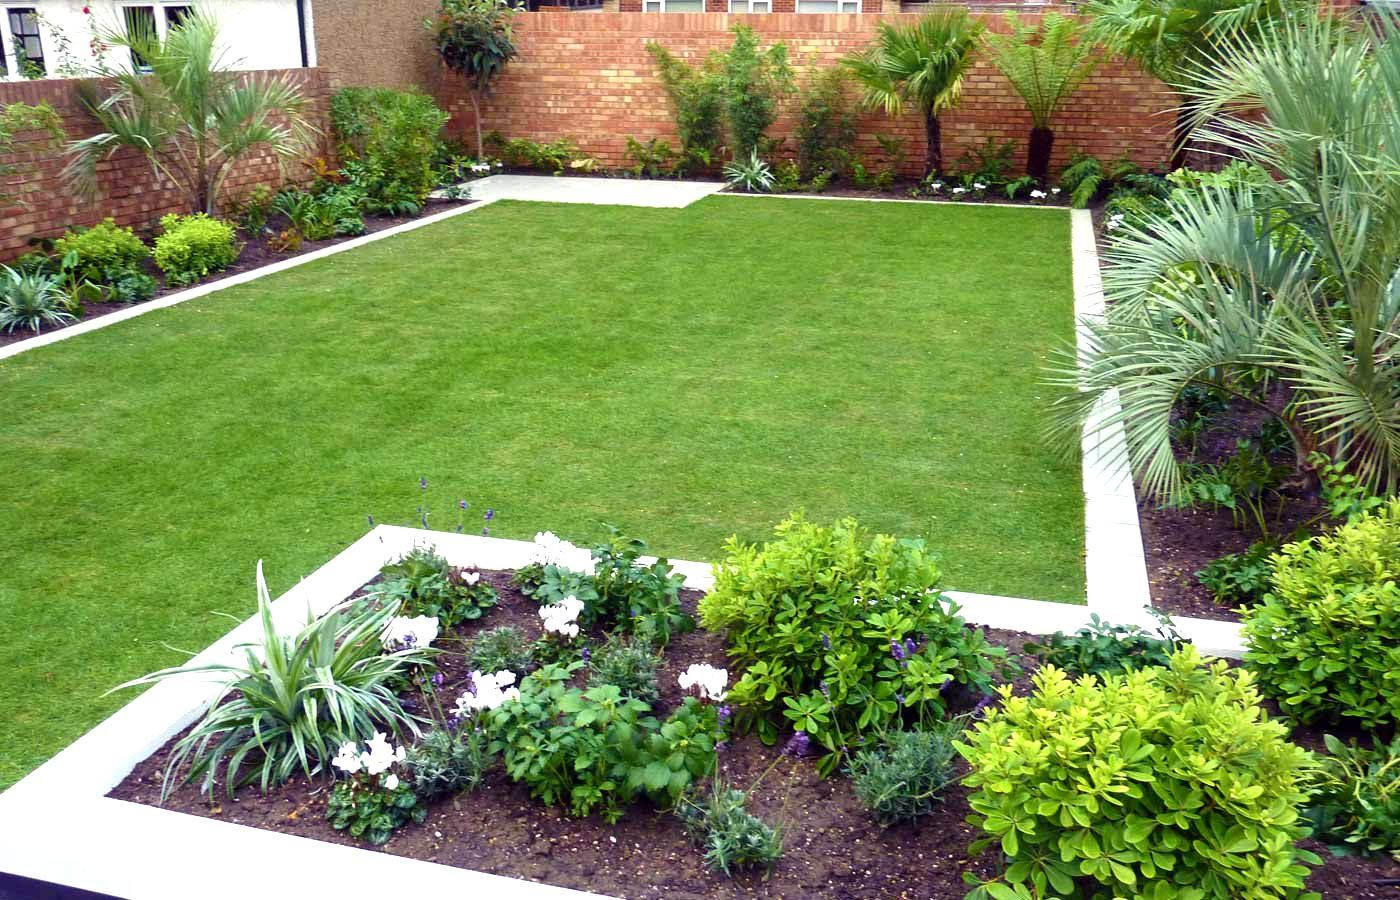 Simple garden designs no fret small garden design for Easy garden design